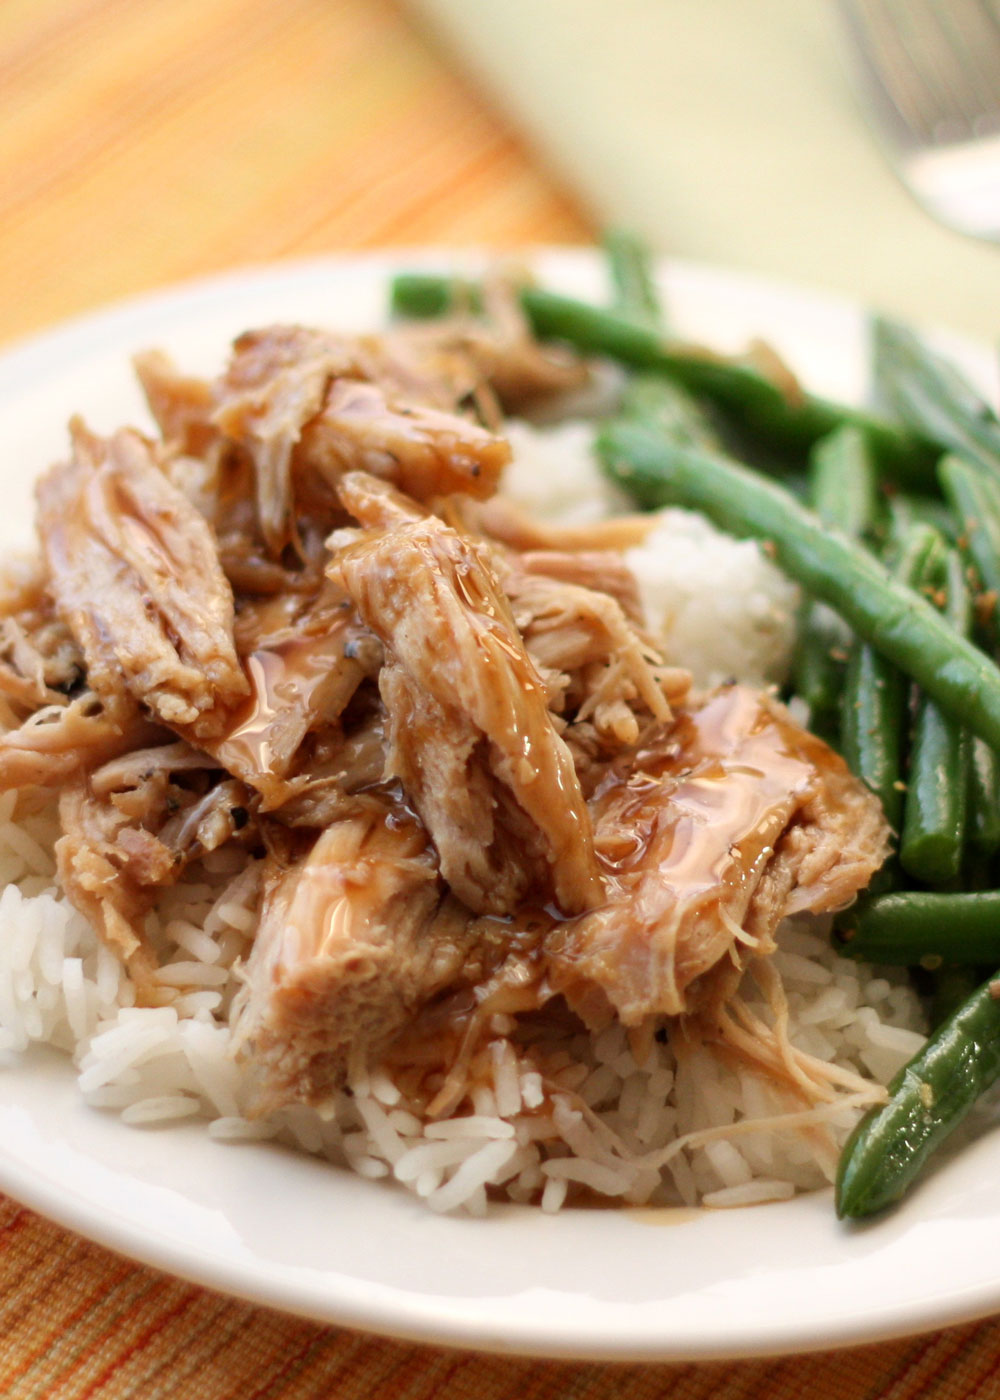 recipe from tangy slow cooker pork roast tangy slow cooker pork roast ...